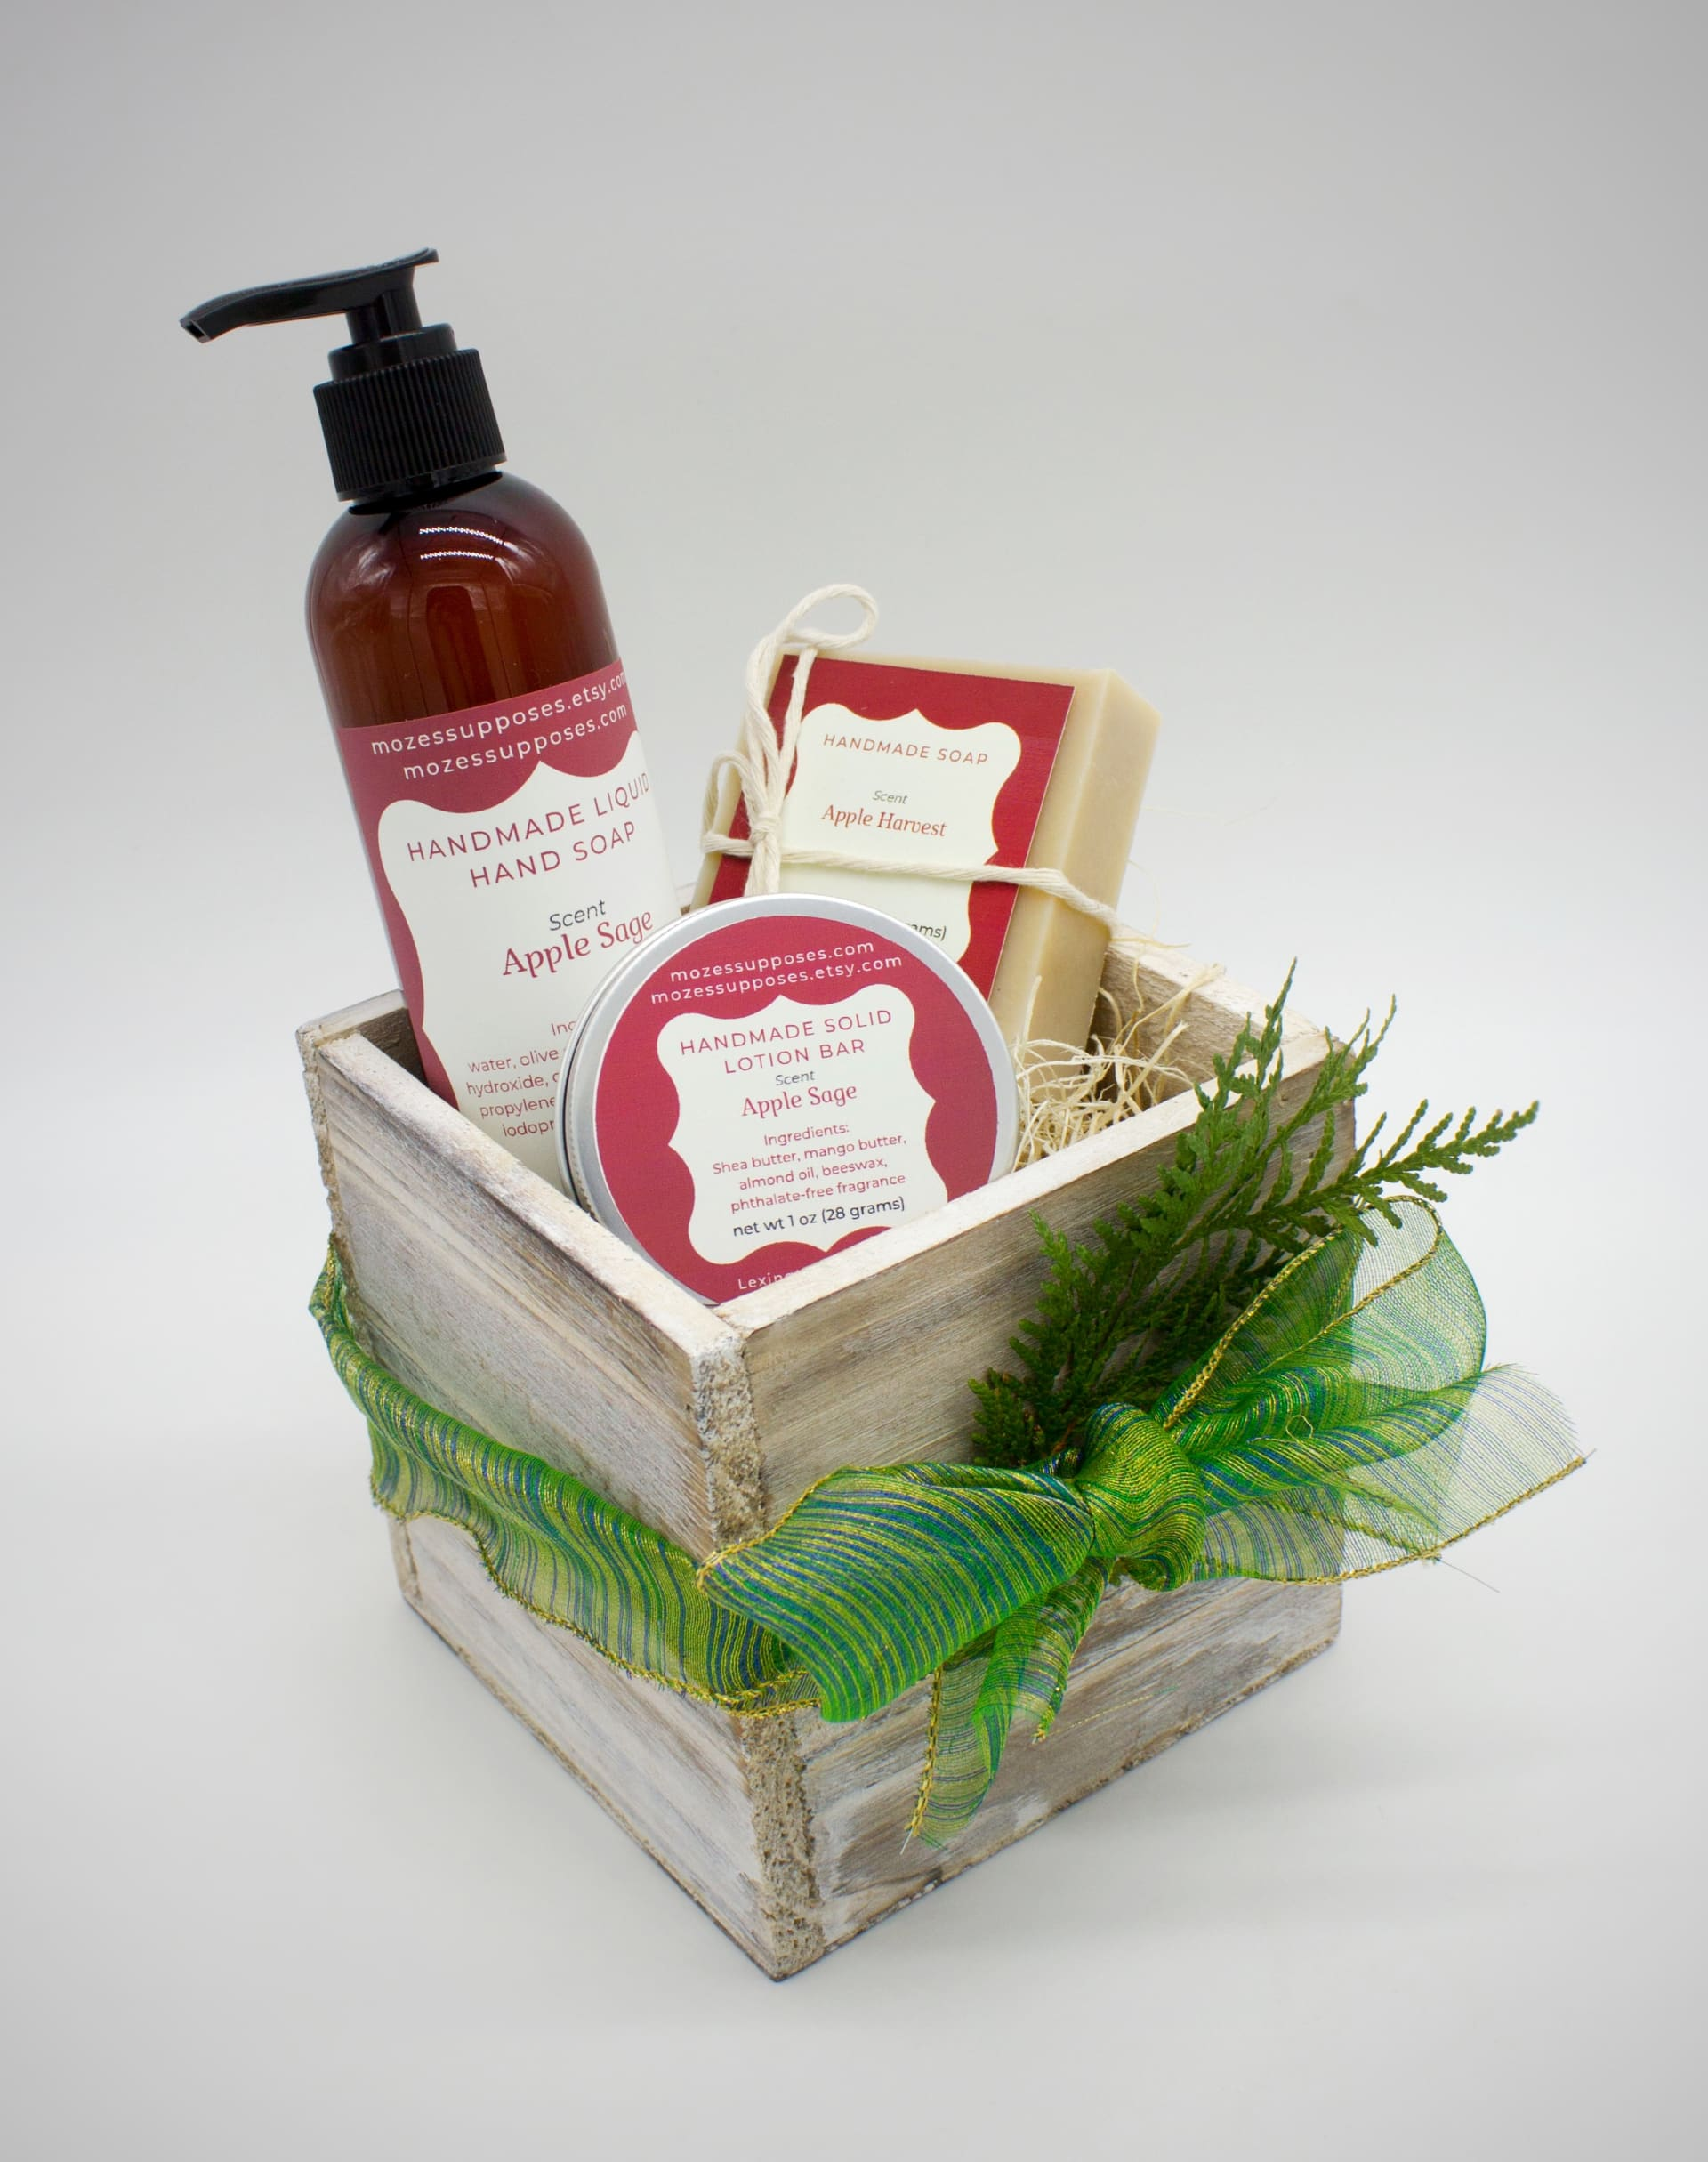 Mozes-Supposes-Soap-and-Skincare-Gift-Set_Image-7-w1920.jpg